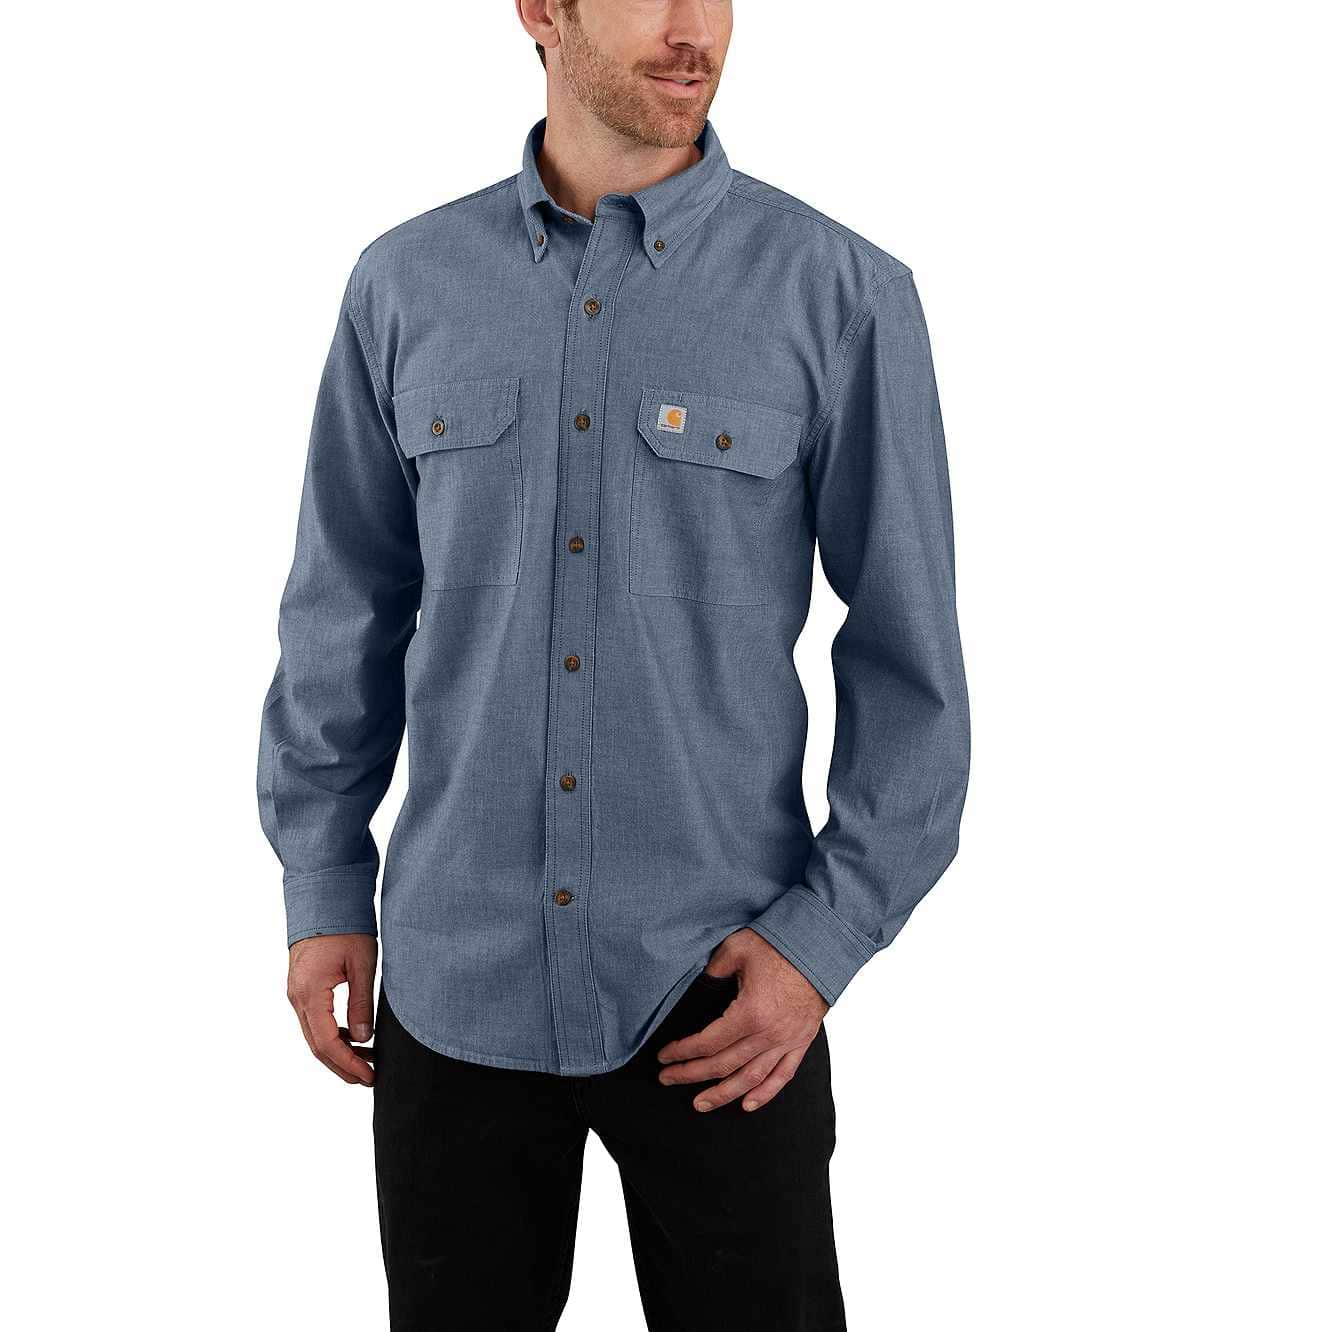 Picture of LOOSE FIT MIDWEIGHT LONG-SLEEVE BUTTON-FRONT SHIRT in Denim Blue Chambray